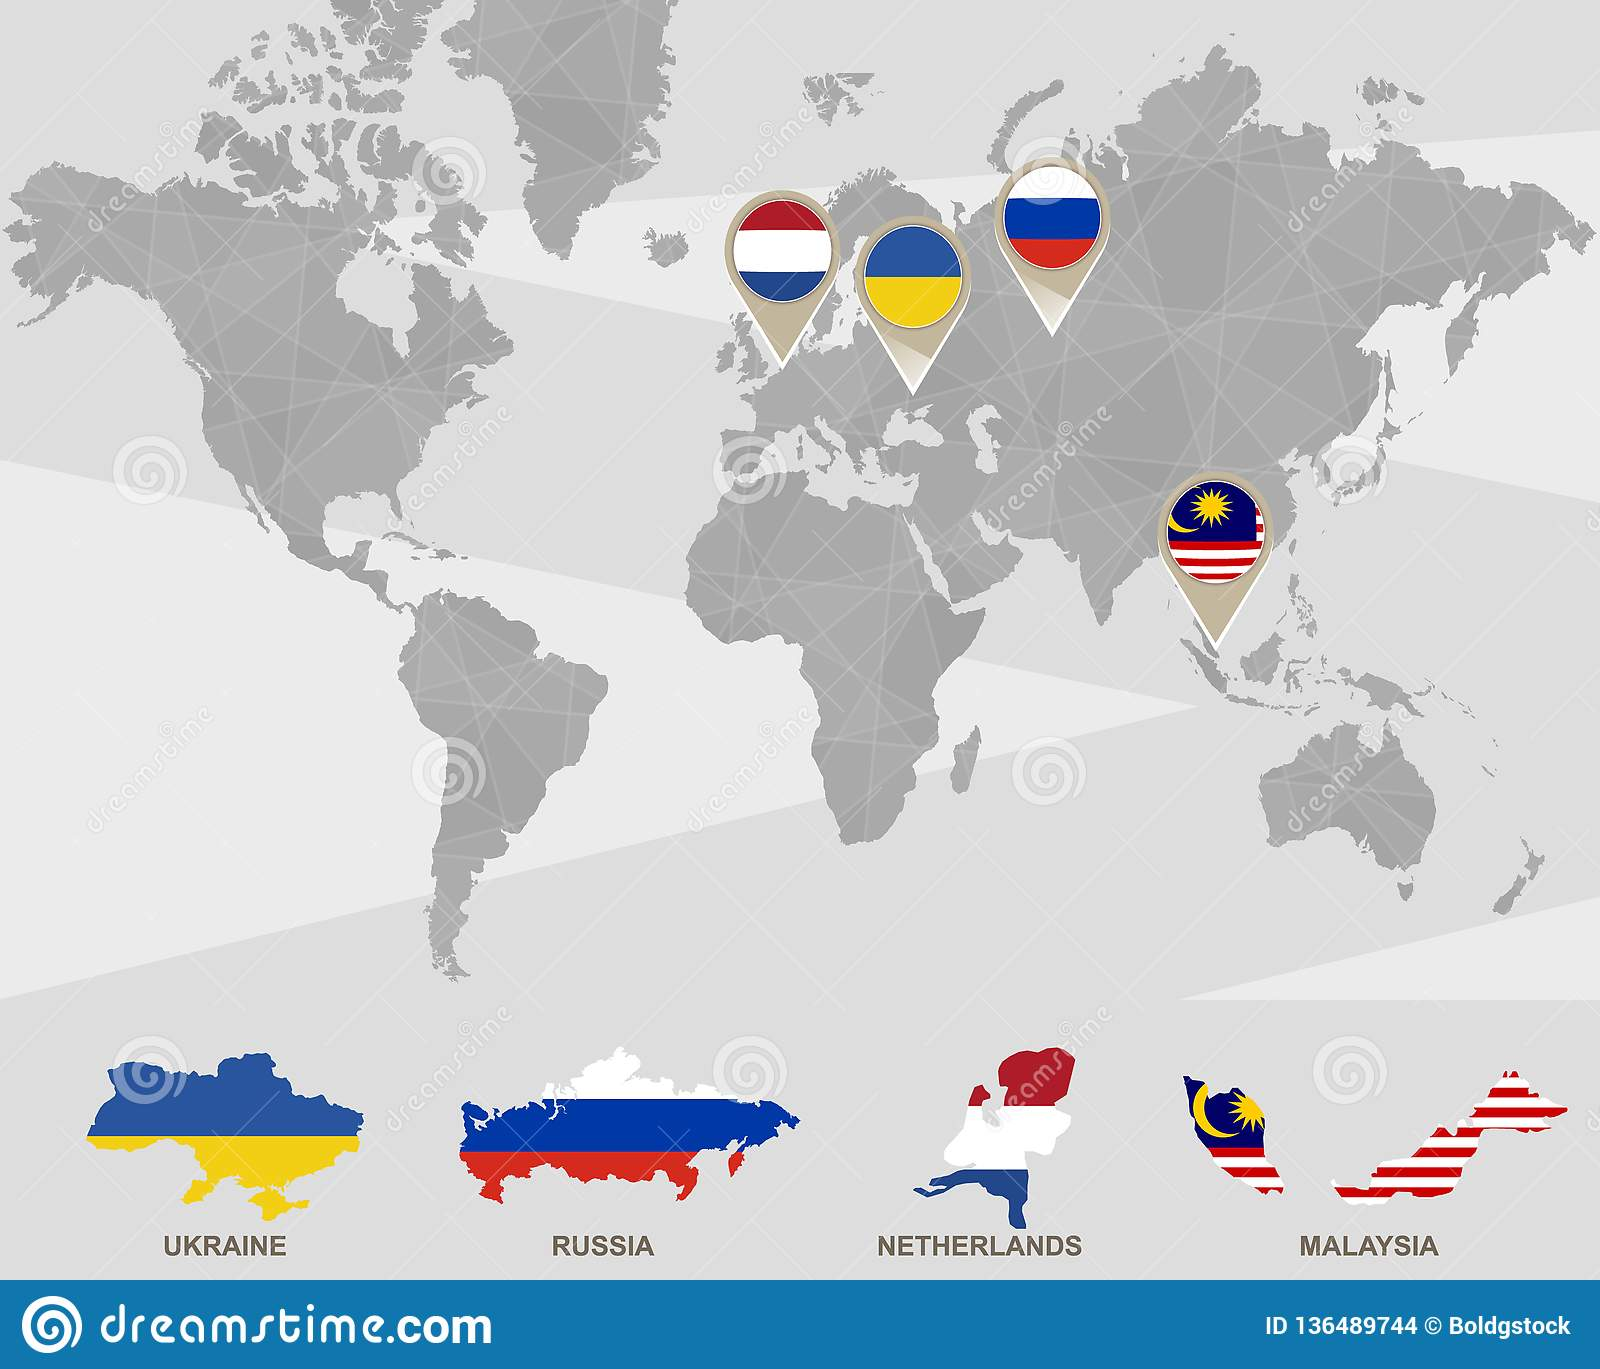 Picture of: World Map With Ukraine Russia Netherlands Malaysia Pointers Stock Vector Illustration Of Cartography Geometrical 136489744